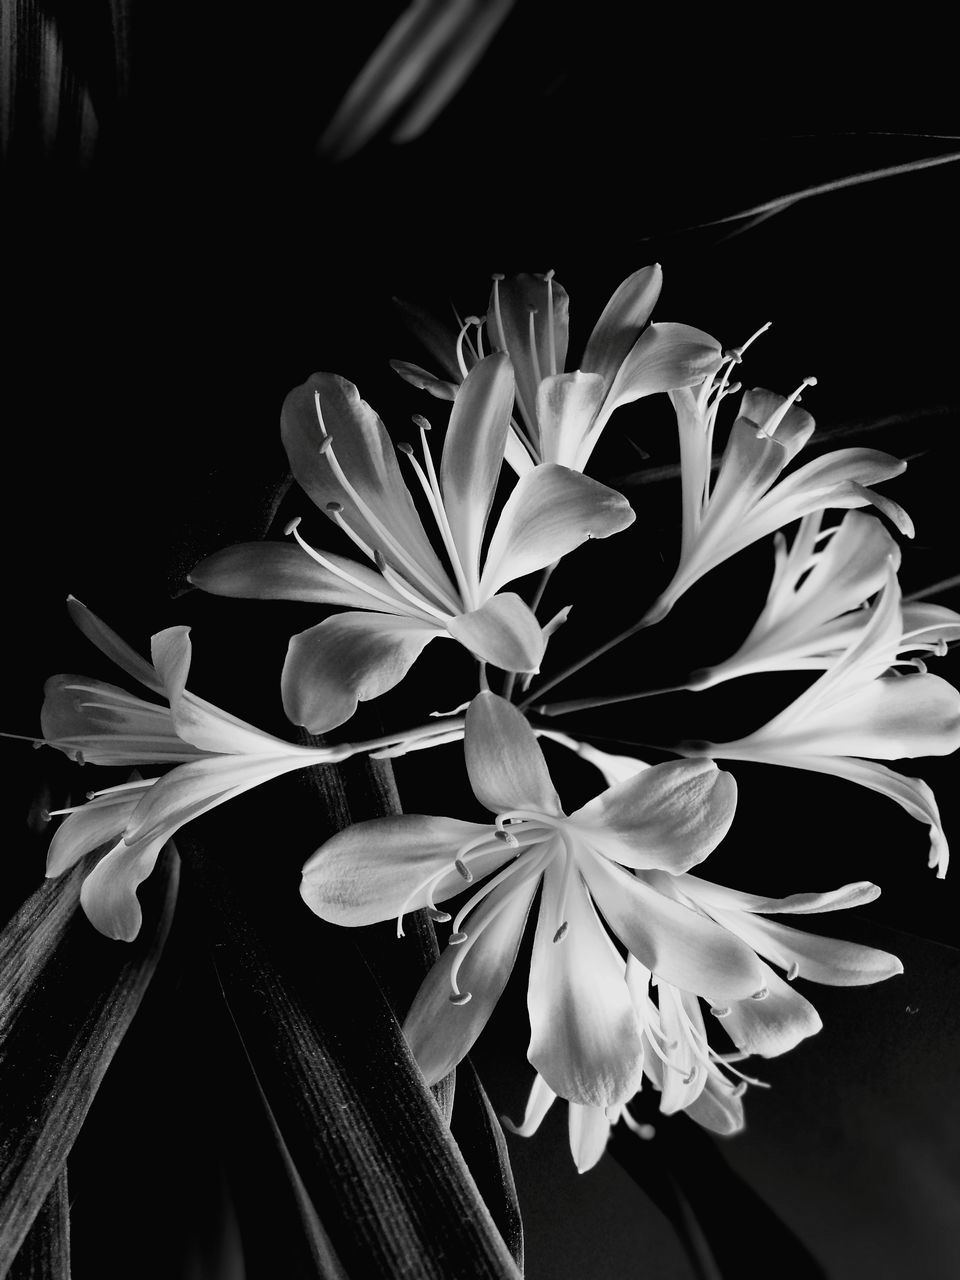 flower, petal, growth, beauty in nature, flower head, fragility, nature, plant, freshness, no people, night, close-up, black background, blooming, outdoors